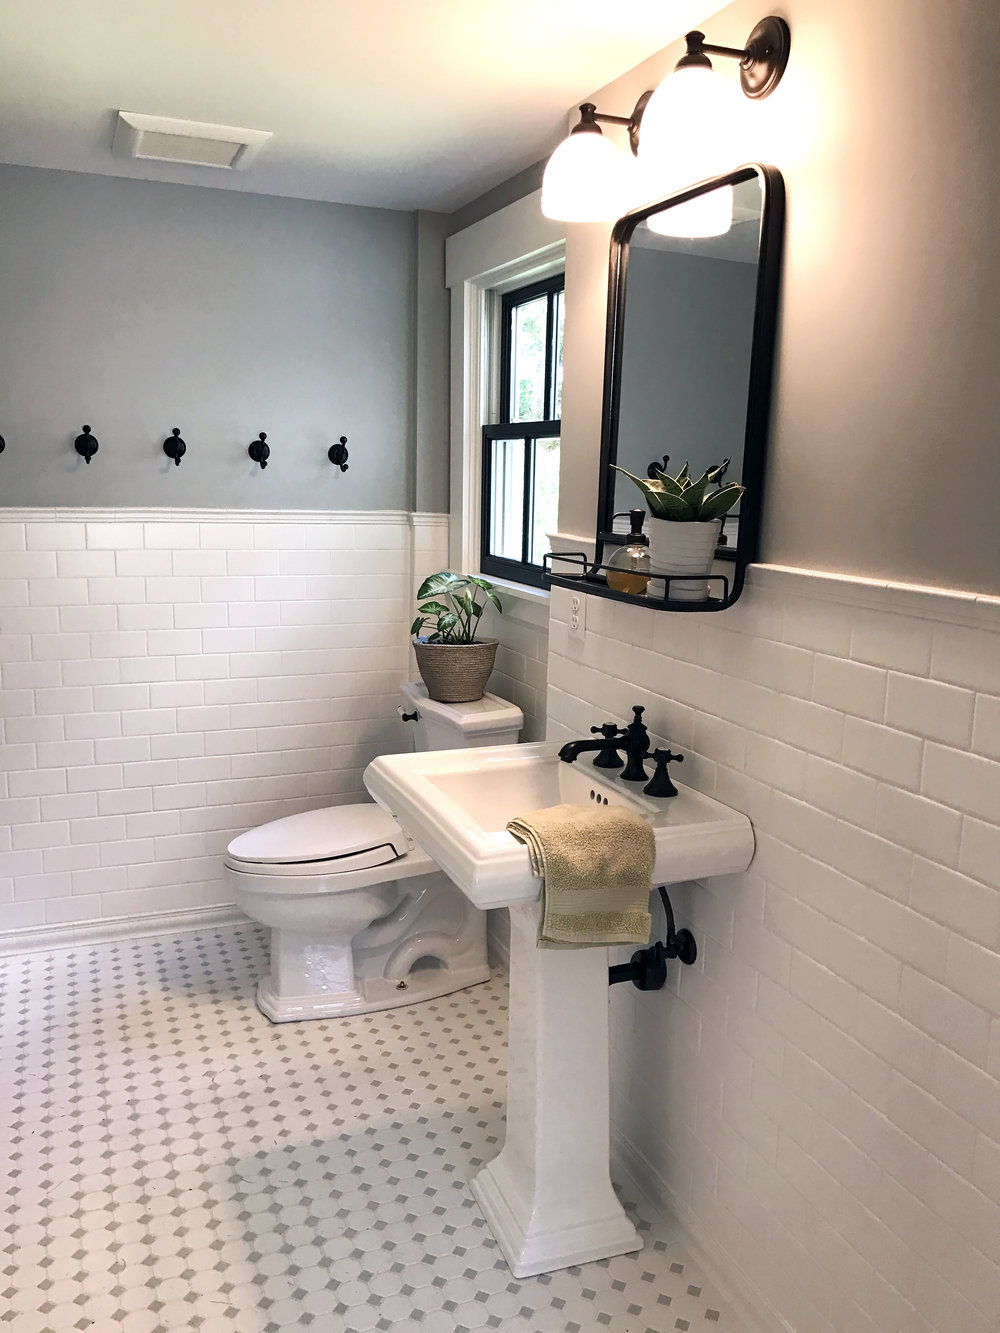 The New Bathroom - Part of Cunningham Farm's Bridal Suite Rental